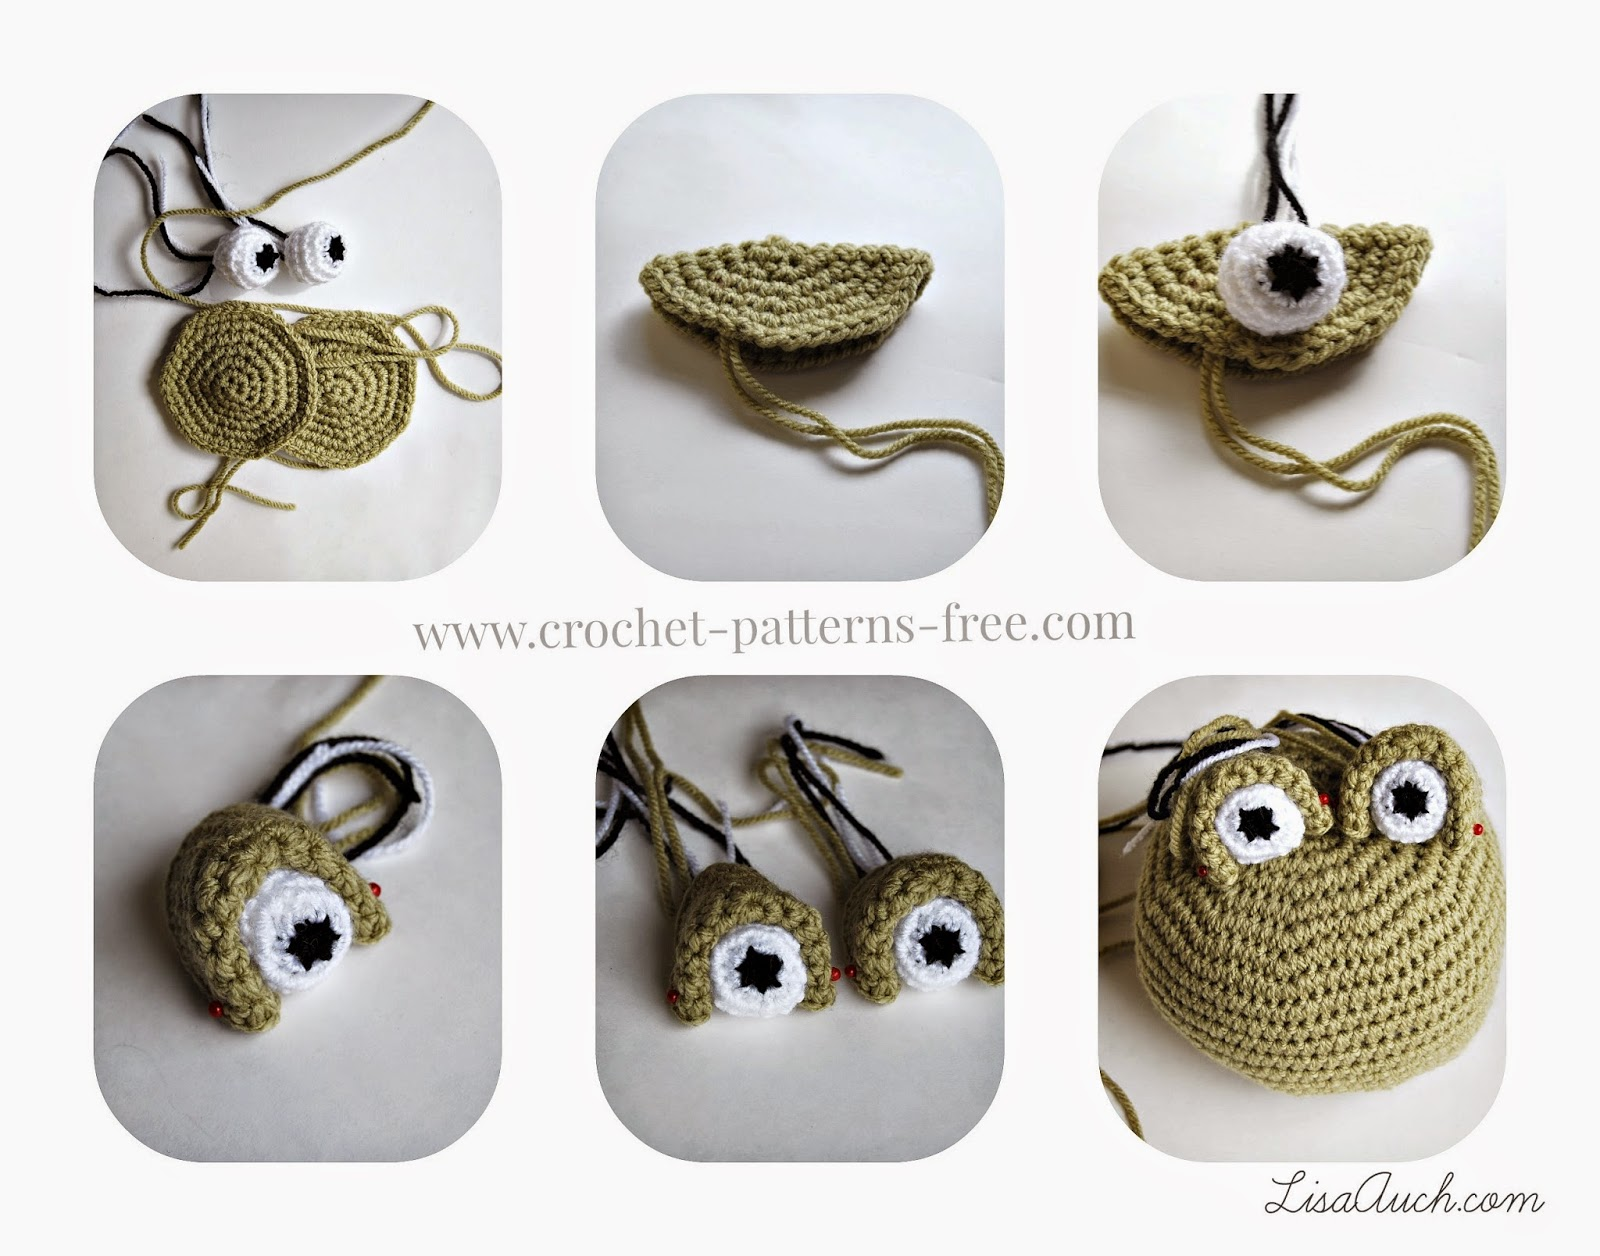 Amigurumi Crochet eyes.Free Easy Crochet Frog Pattern - LisaAuch free crochet patterns and Designs